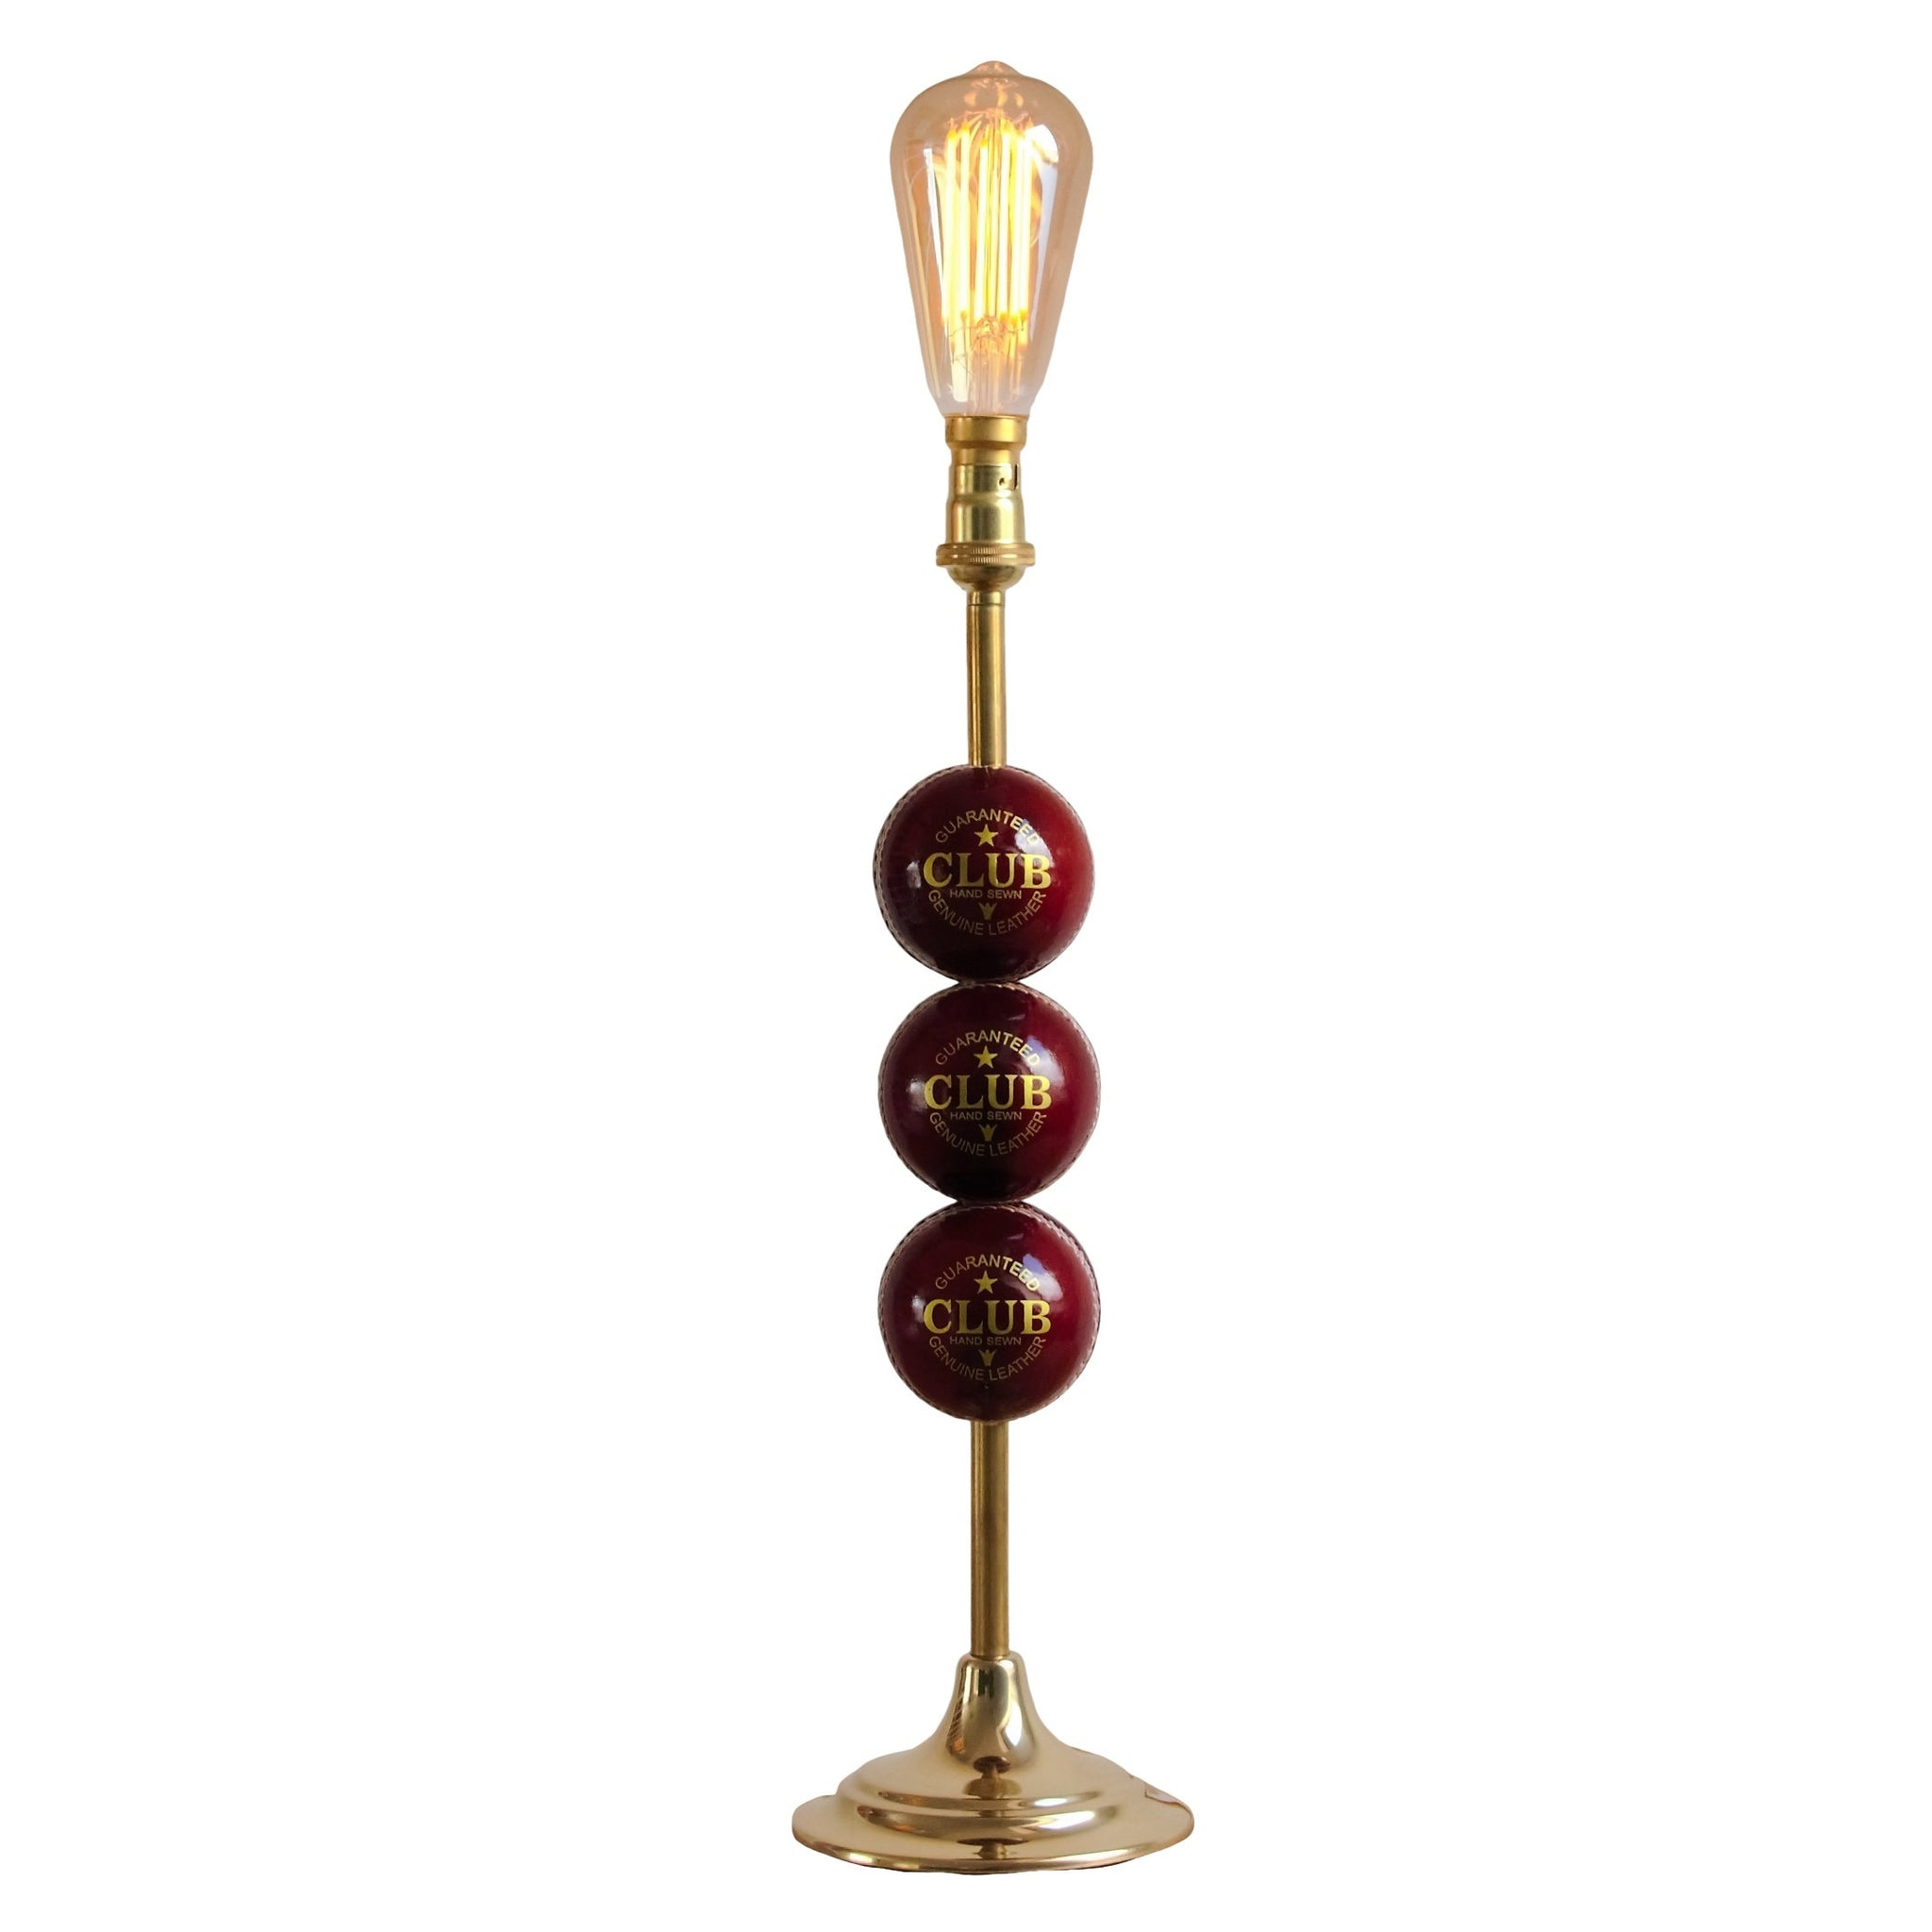 Cricket Ball Light, plus LED Filament Lamp